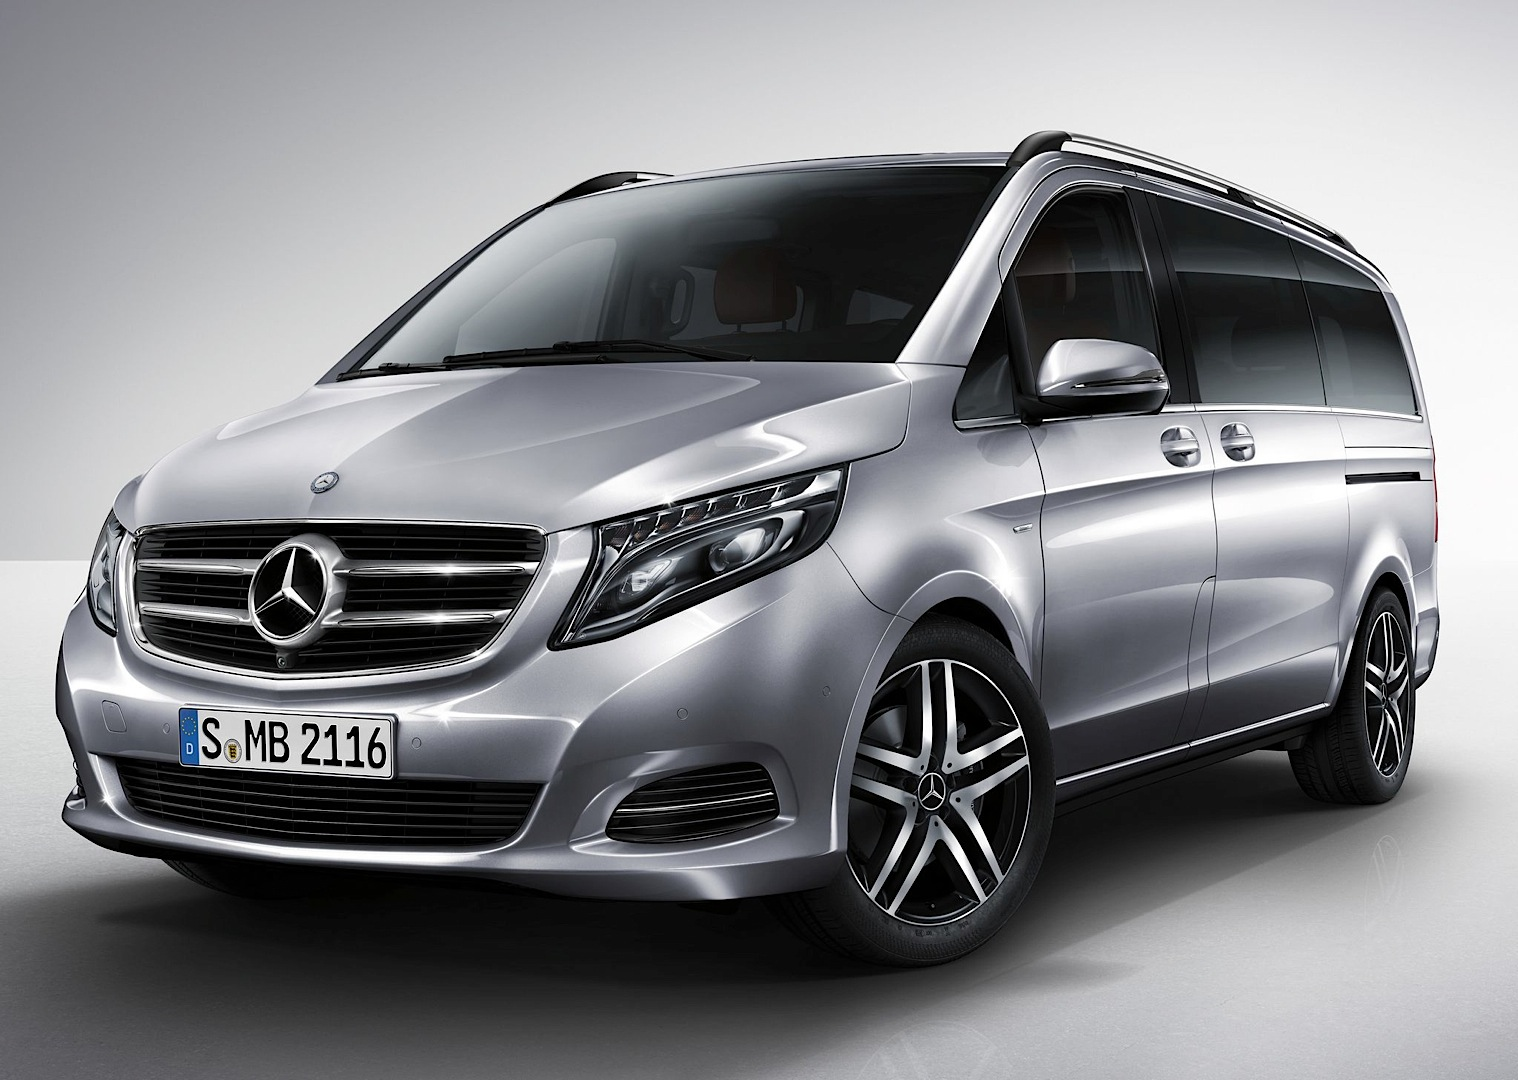 2015 Mercedes Benz V Class Edition 1 Gets Detailed Photo